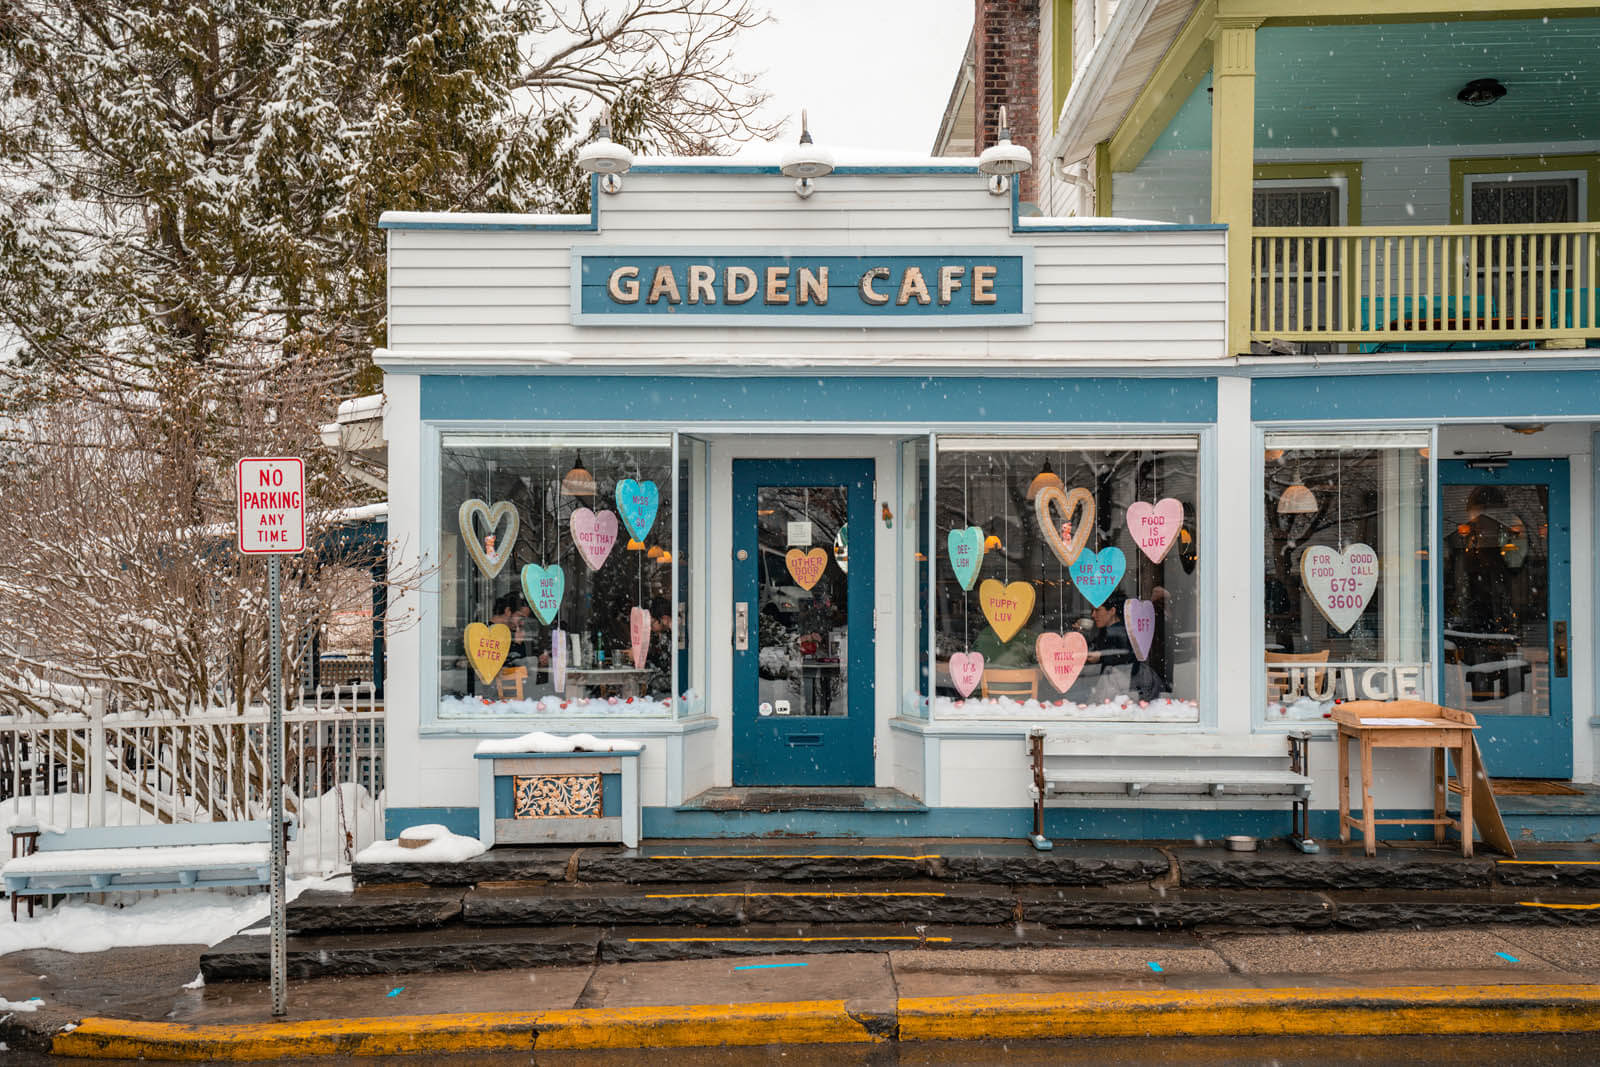 Garden Cafe in Woodstock New York in the Catskills